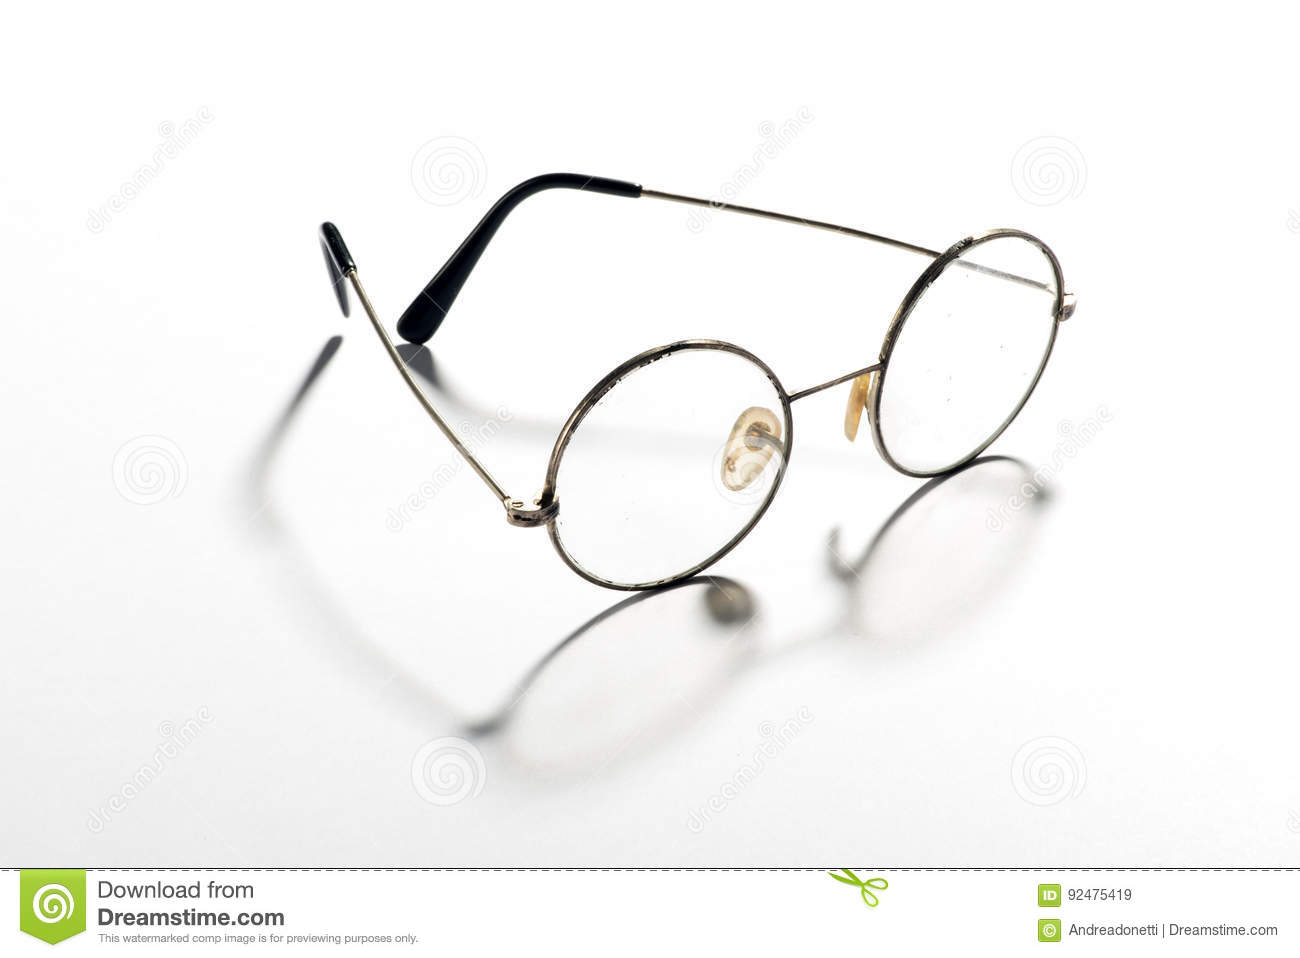 36d6c5aab038 Pair Of Classic Round Vintage Eyeglasses Stock Image - Image of wire ...